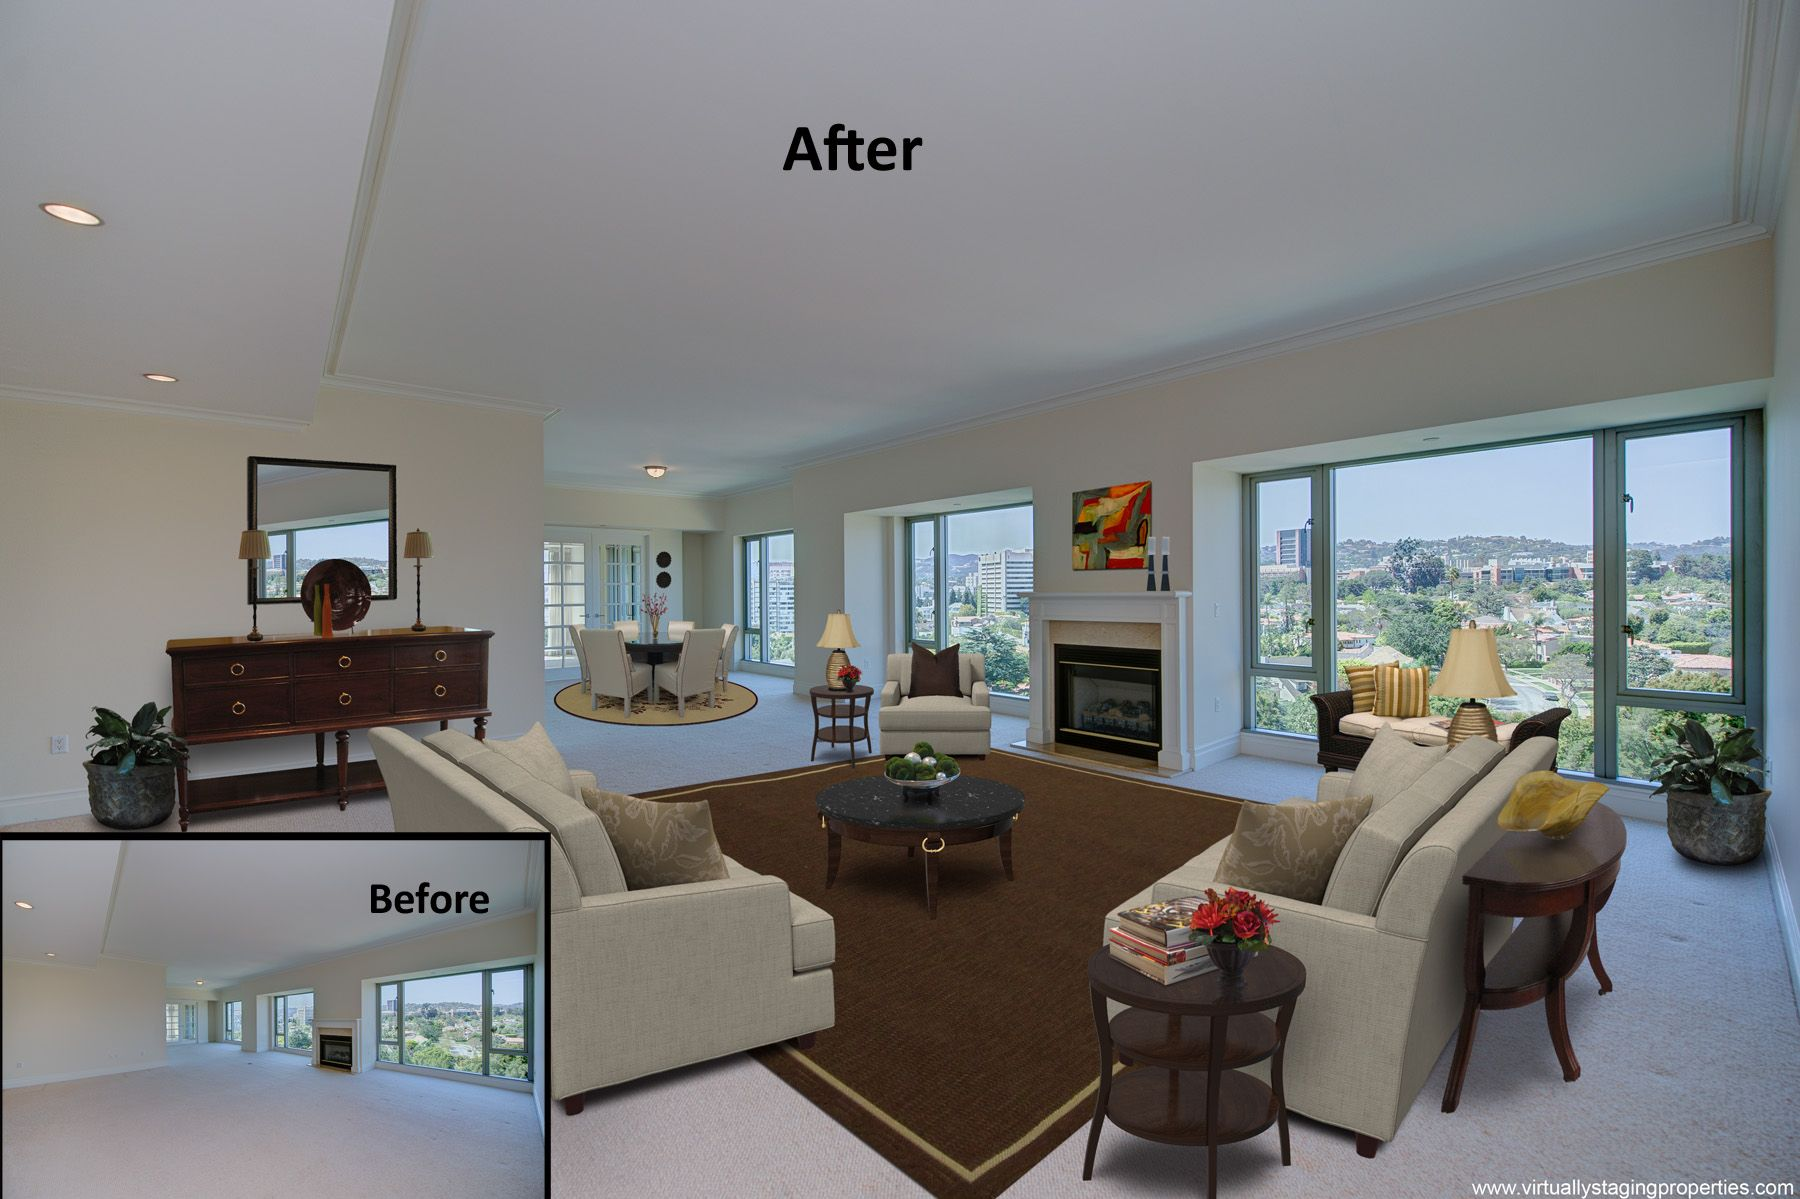 Virtual Staging Added Some Chic Style To This Large Open Living Space In A  Penthouse Unit